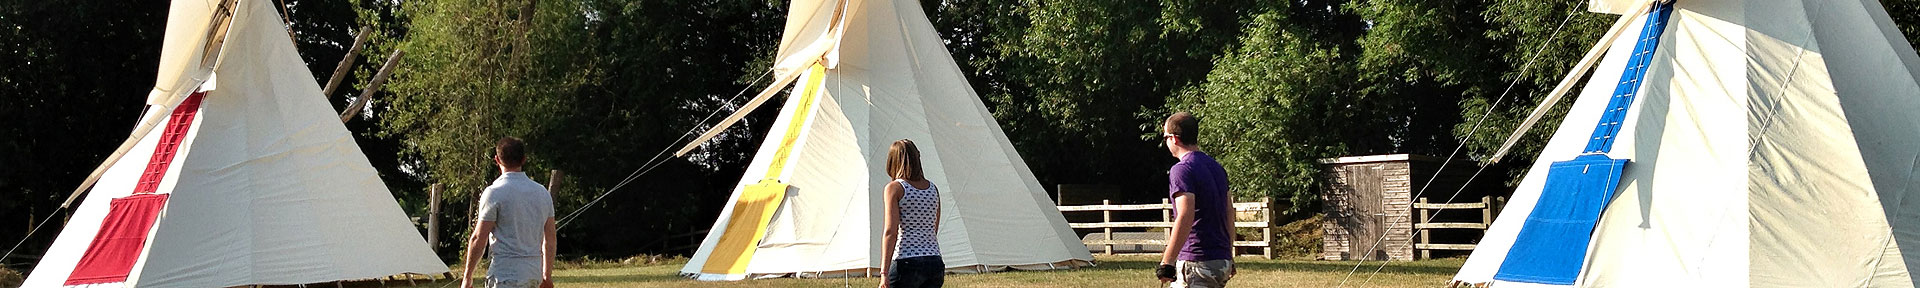 Tipi experiences in the Cotswolds